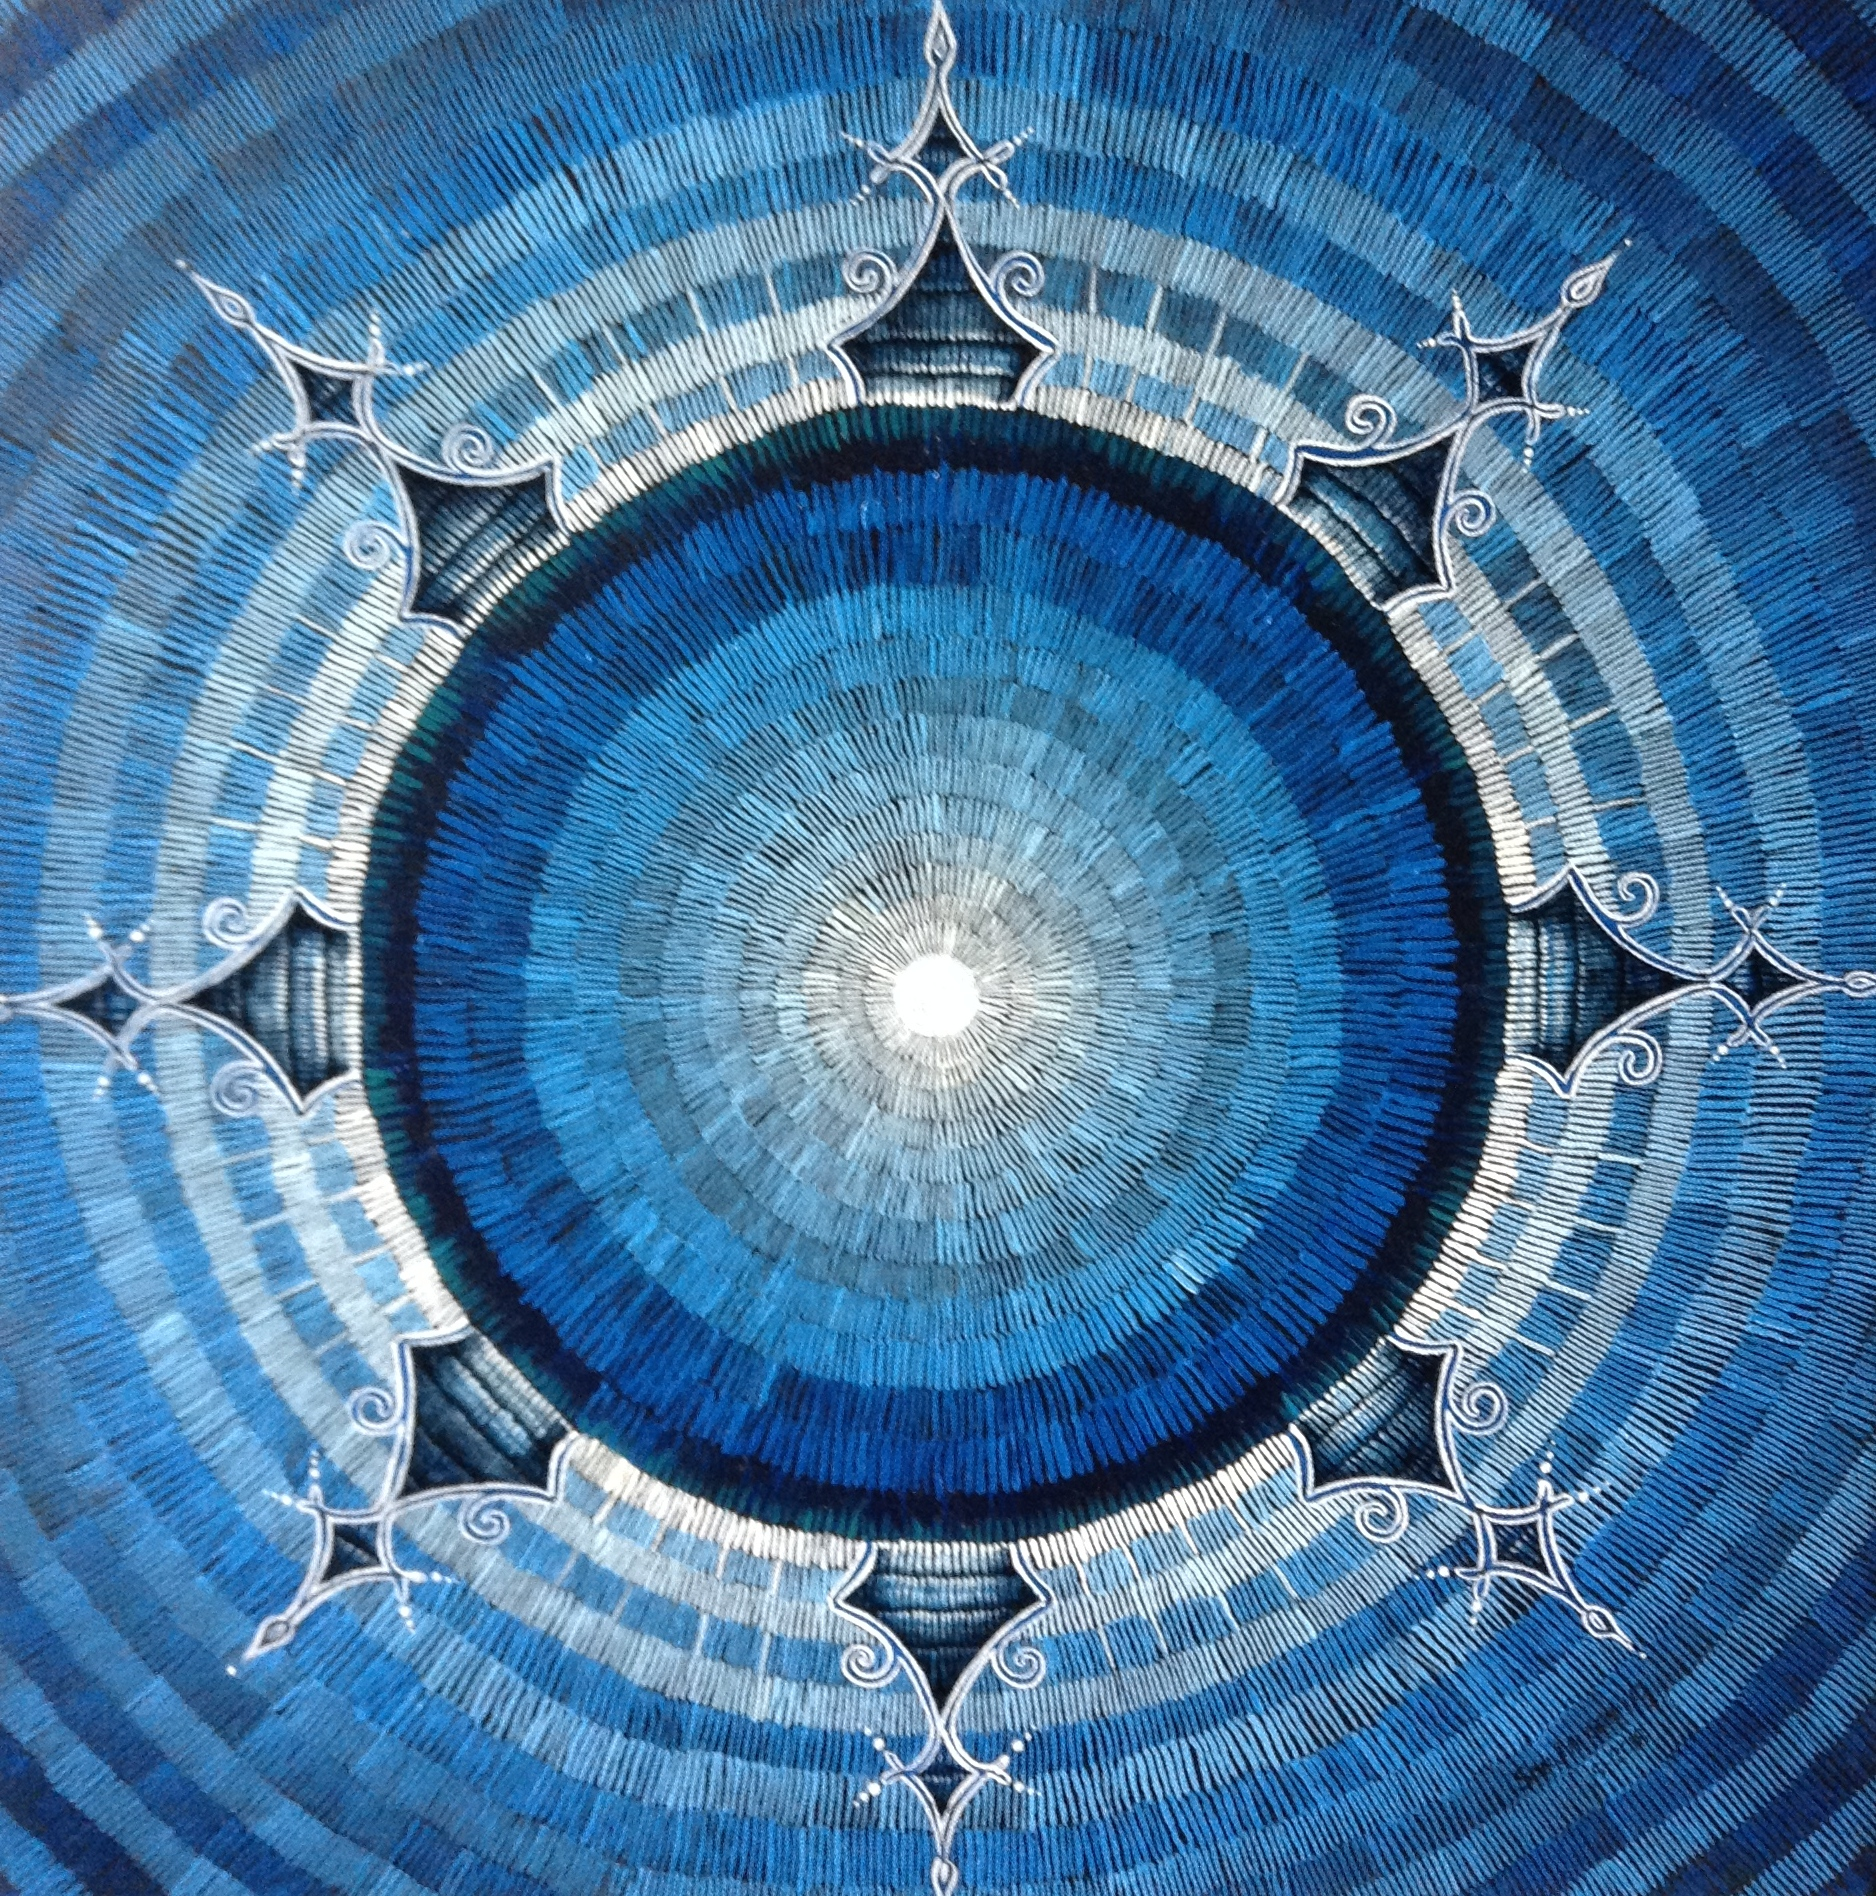 #461 - Chakra Mandala (Fibrous Series) oil on canvas 20x20, April 2018 (4)